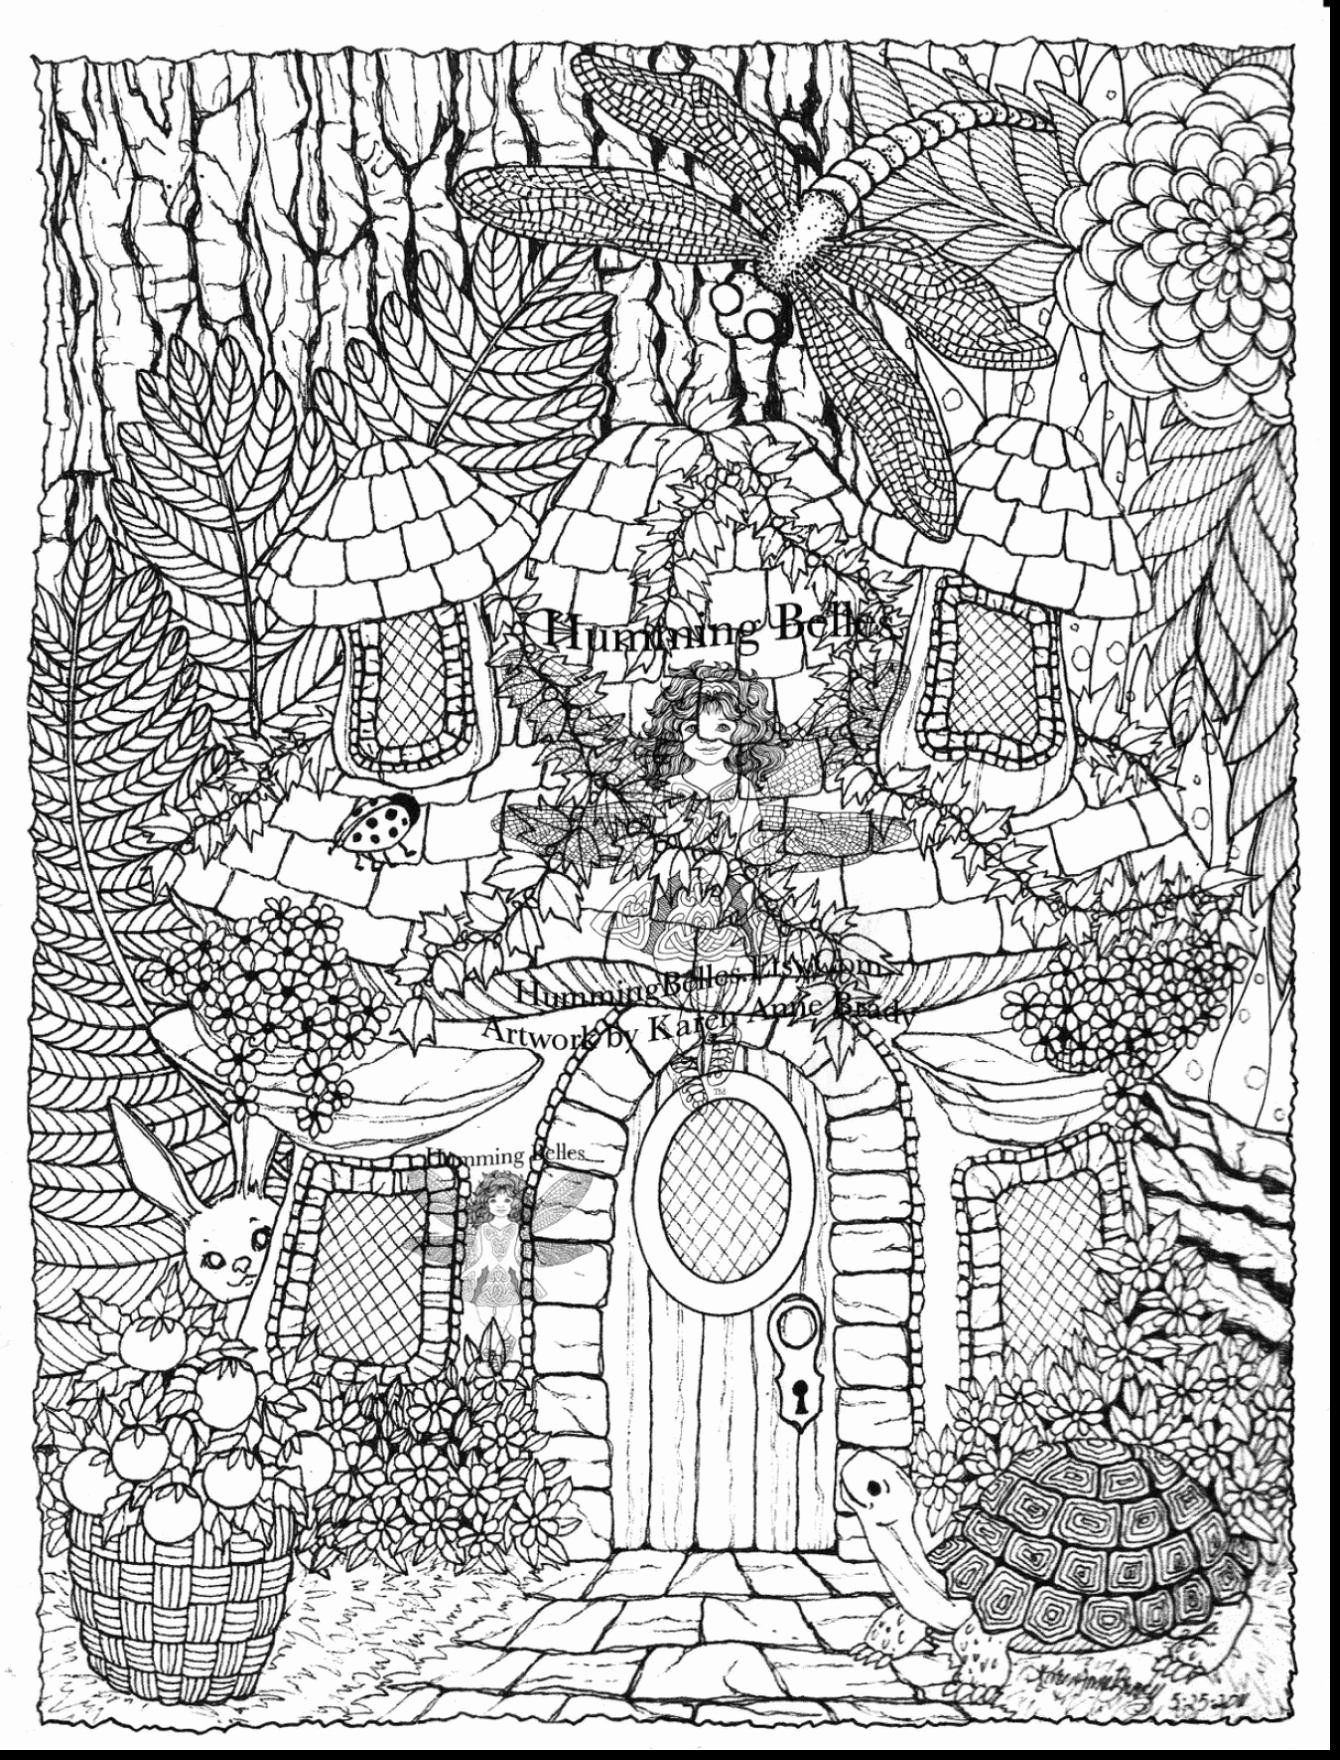 Nature Coloring Pages Pdf New Hard Coloring Pages For Adults At Getcolorings Detailed Coloring Pages Coloring Pages Nature Turtle Coloring Pages